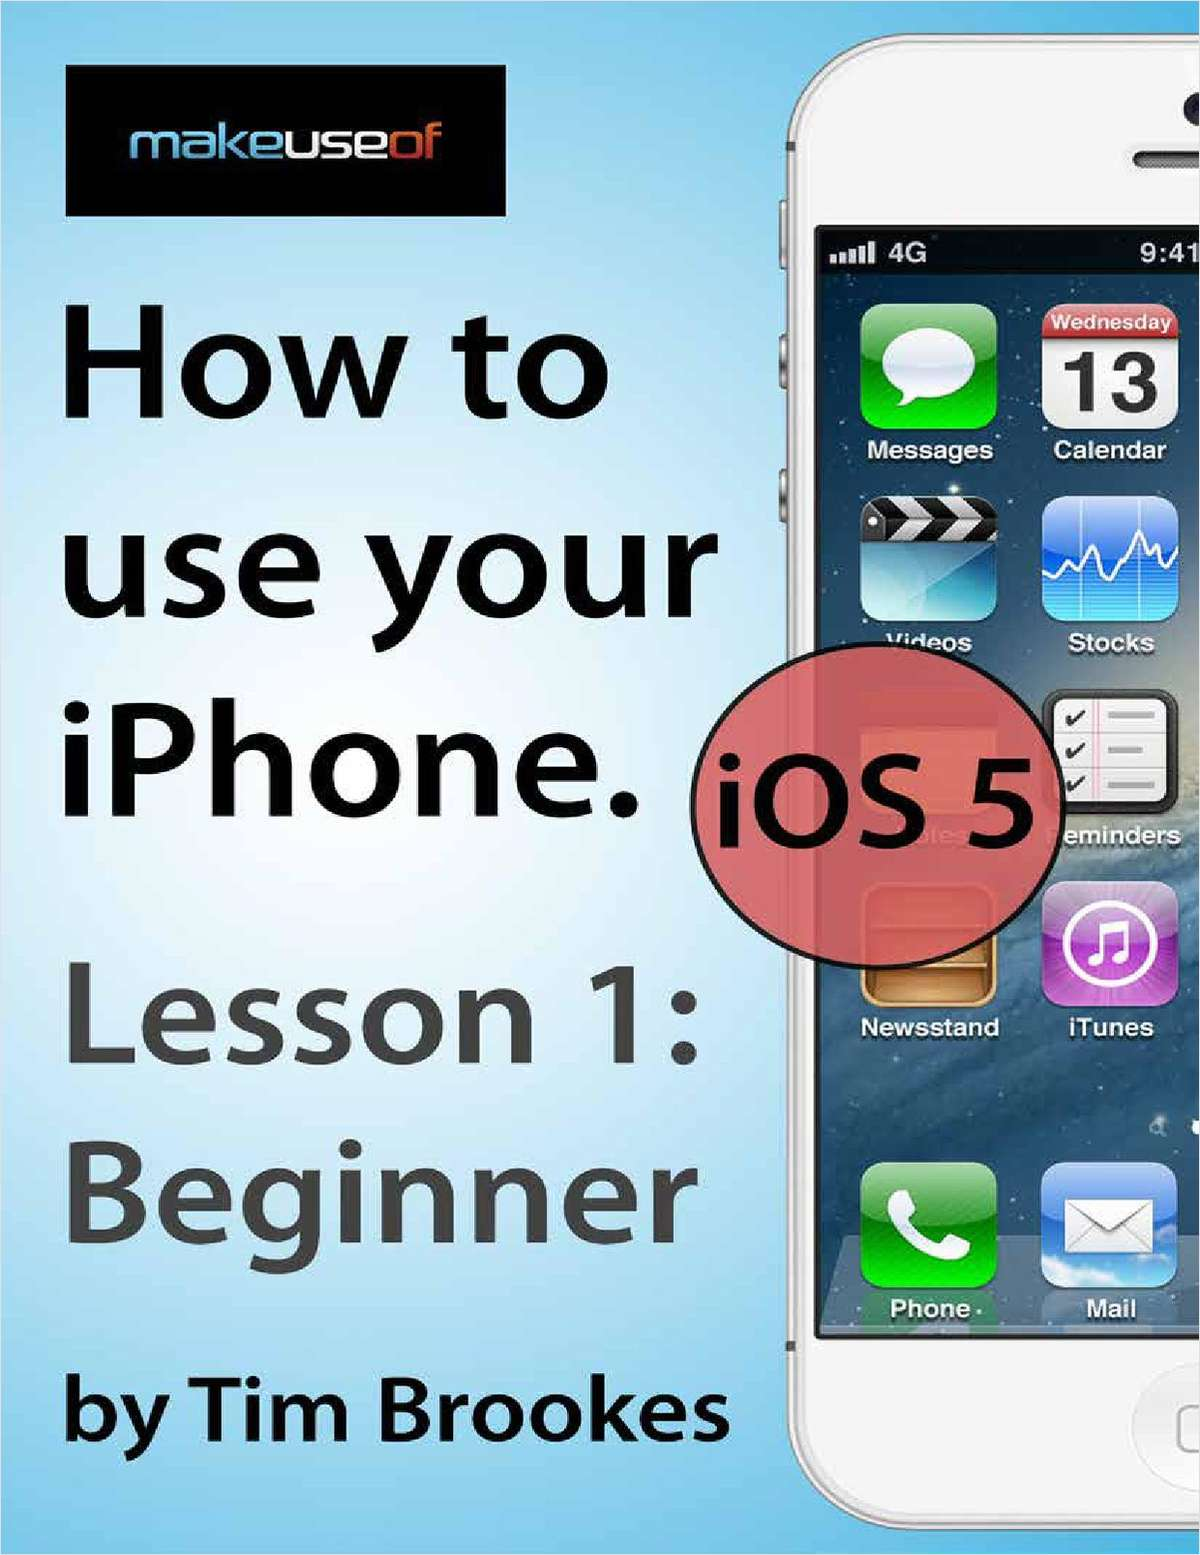 How To Use Your iPhone iOS5: Lesson 1 Beginner